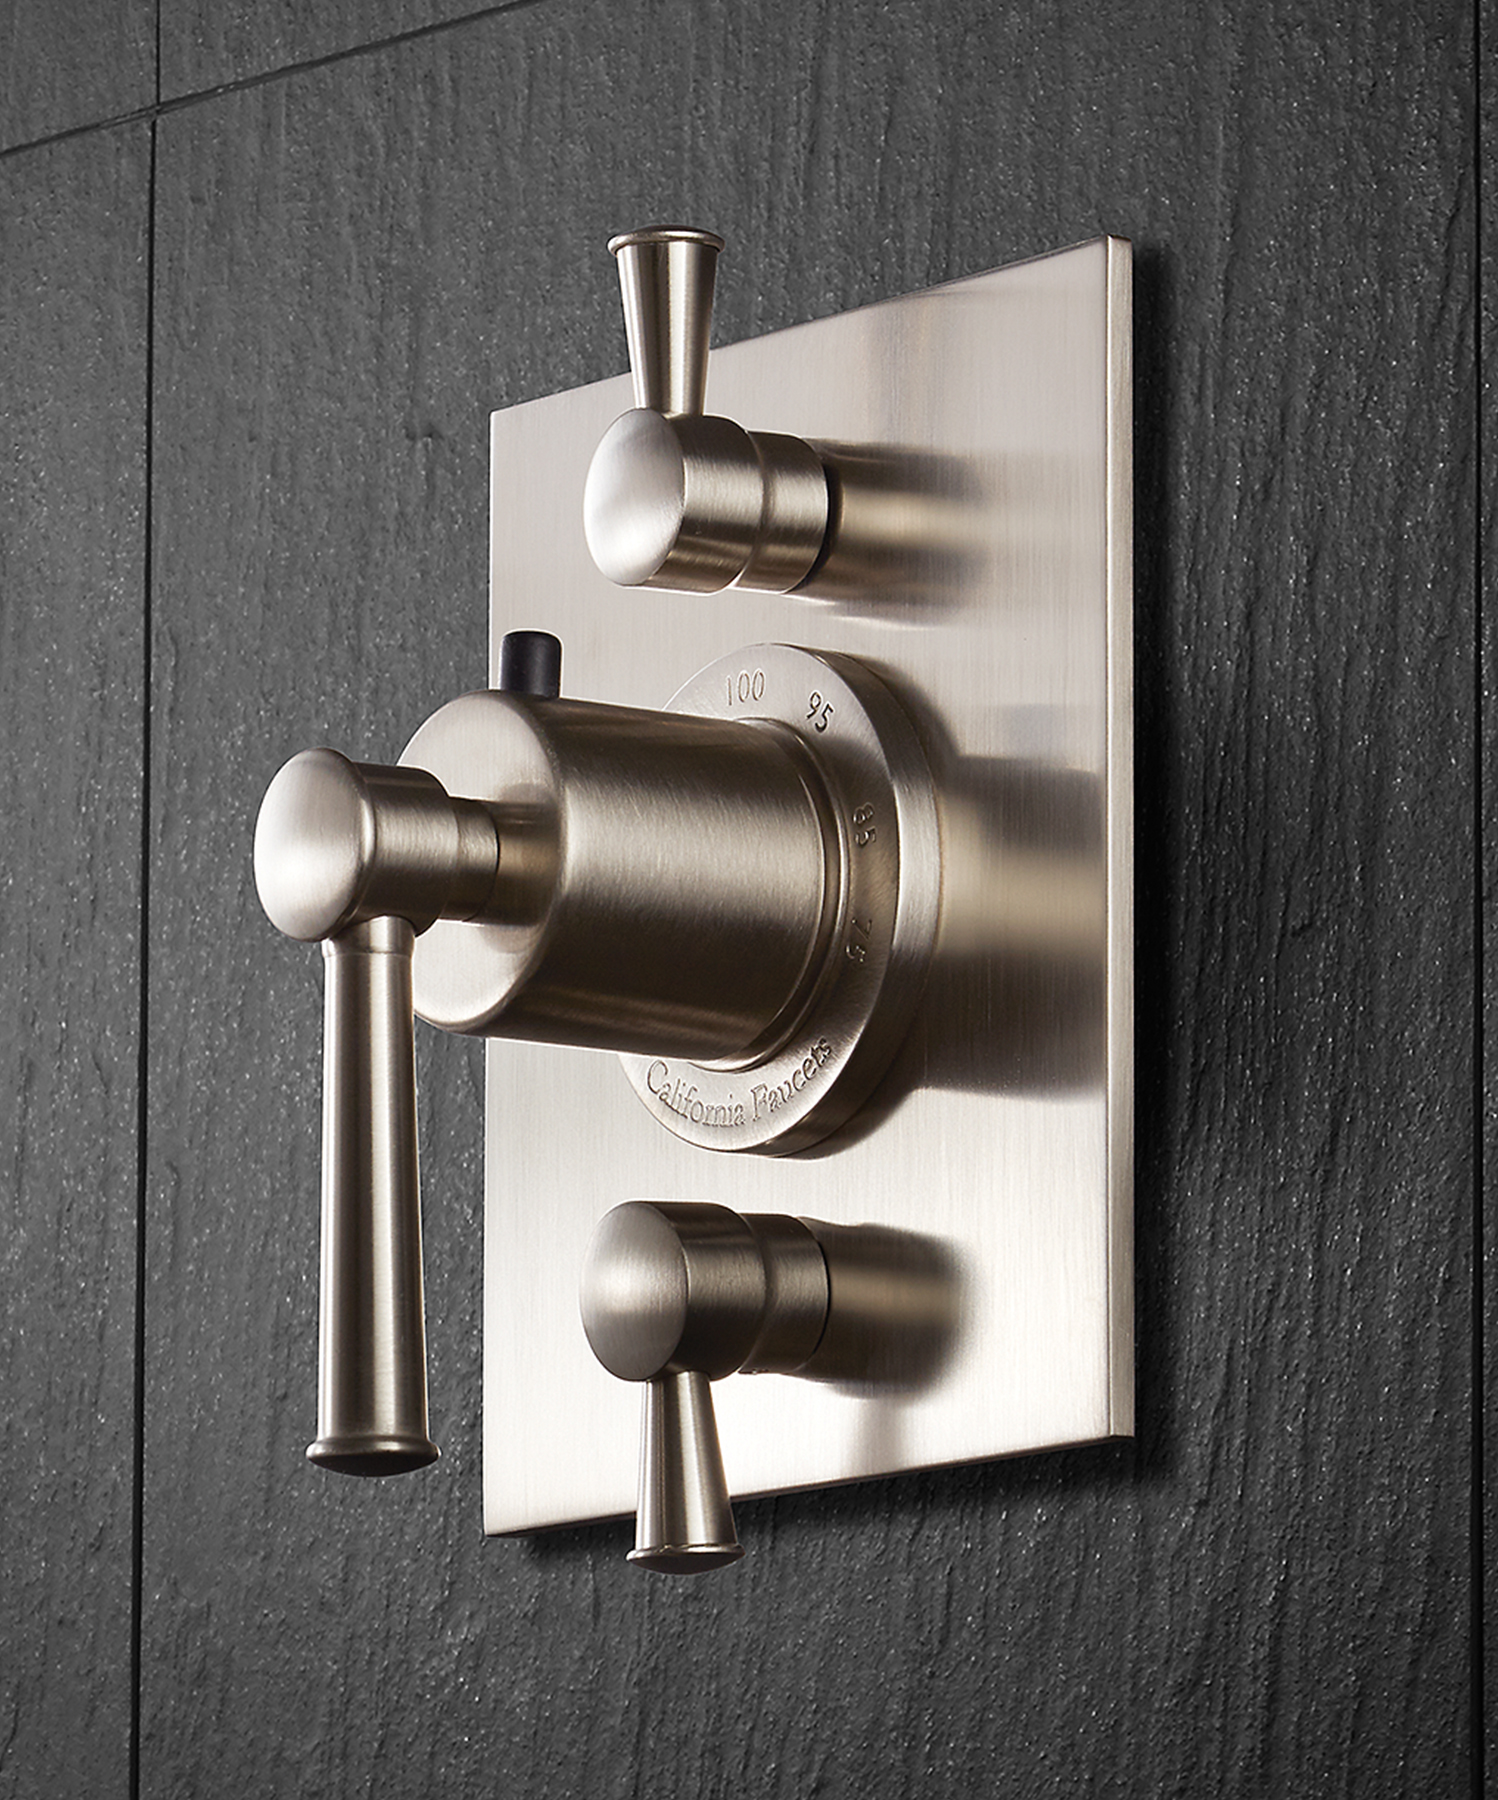 The ½-inch thermostatic rough valve is made with forged brass and includes stops and check valves.